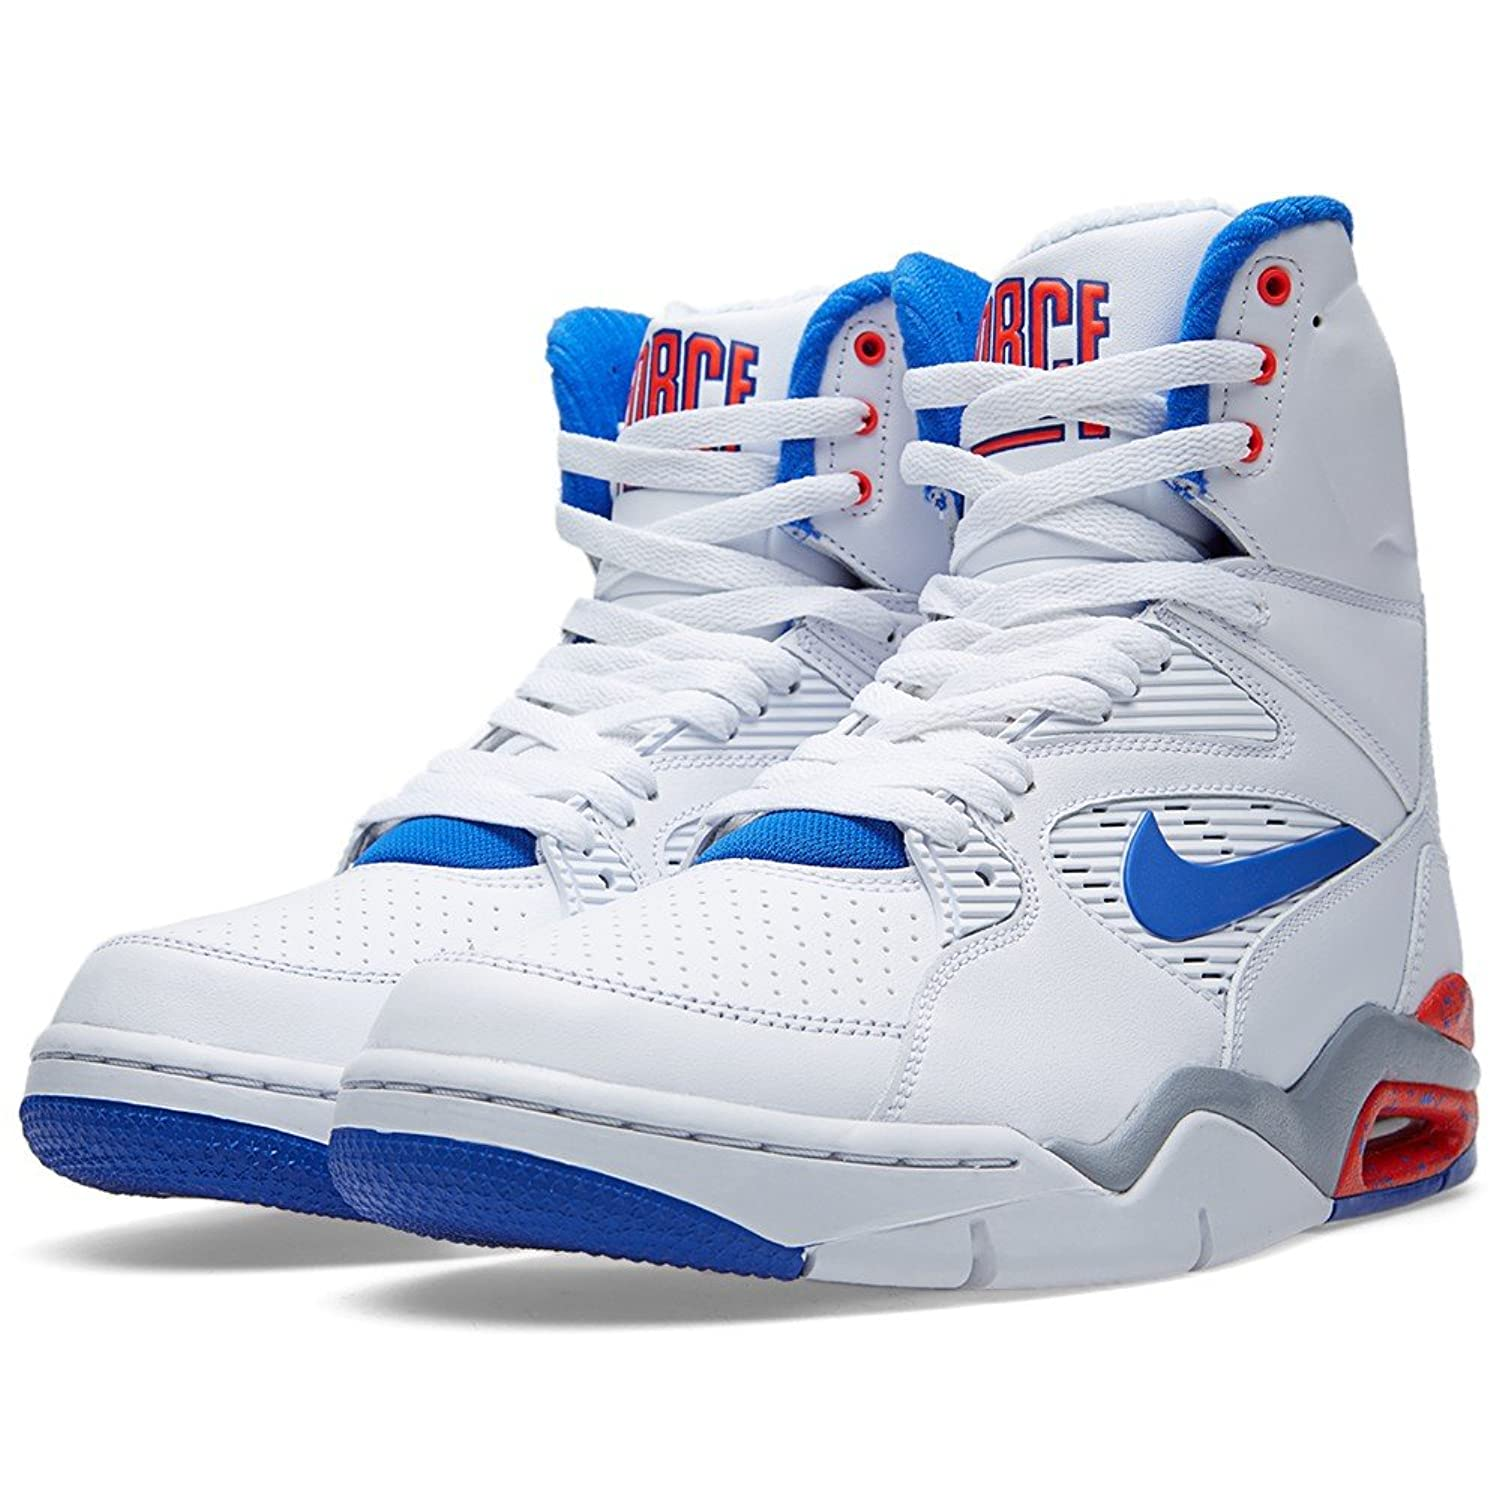 Nike Force Nike Force Amazon Command Command Air Air 54LS3RjAqc